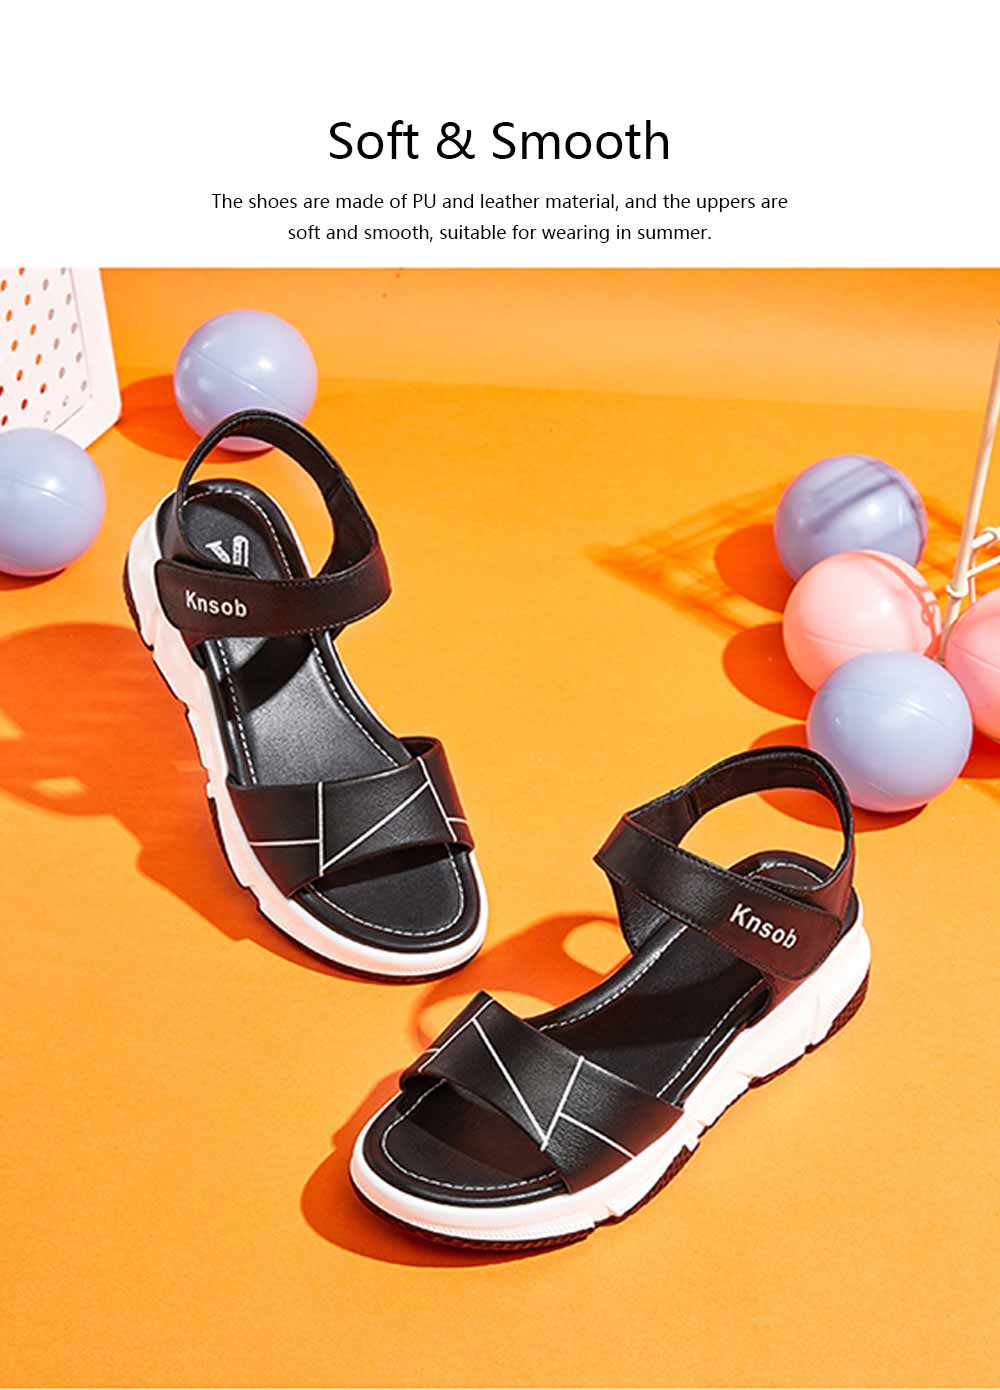 Sport Women Sandal Leather PU Material Flat-heeled Prevent Wear Foot Adjustable Velcro for Girl Shoes Summer 5